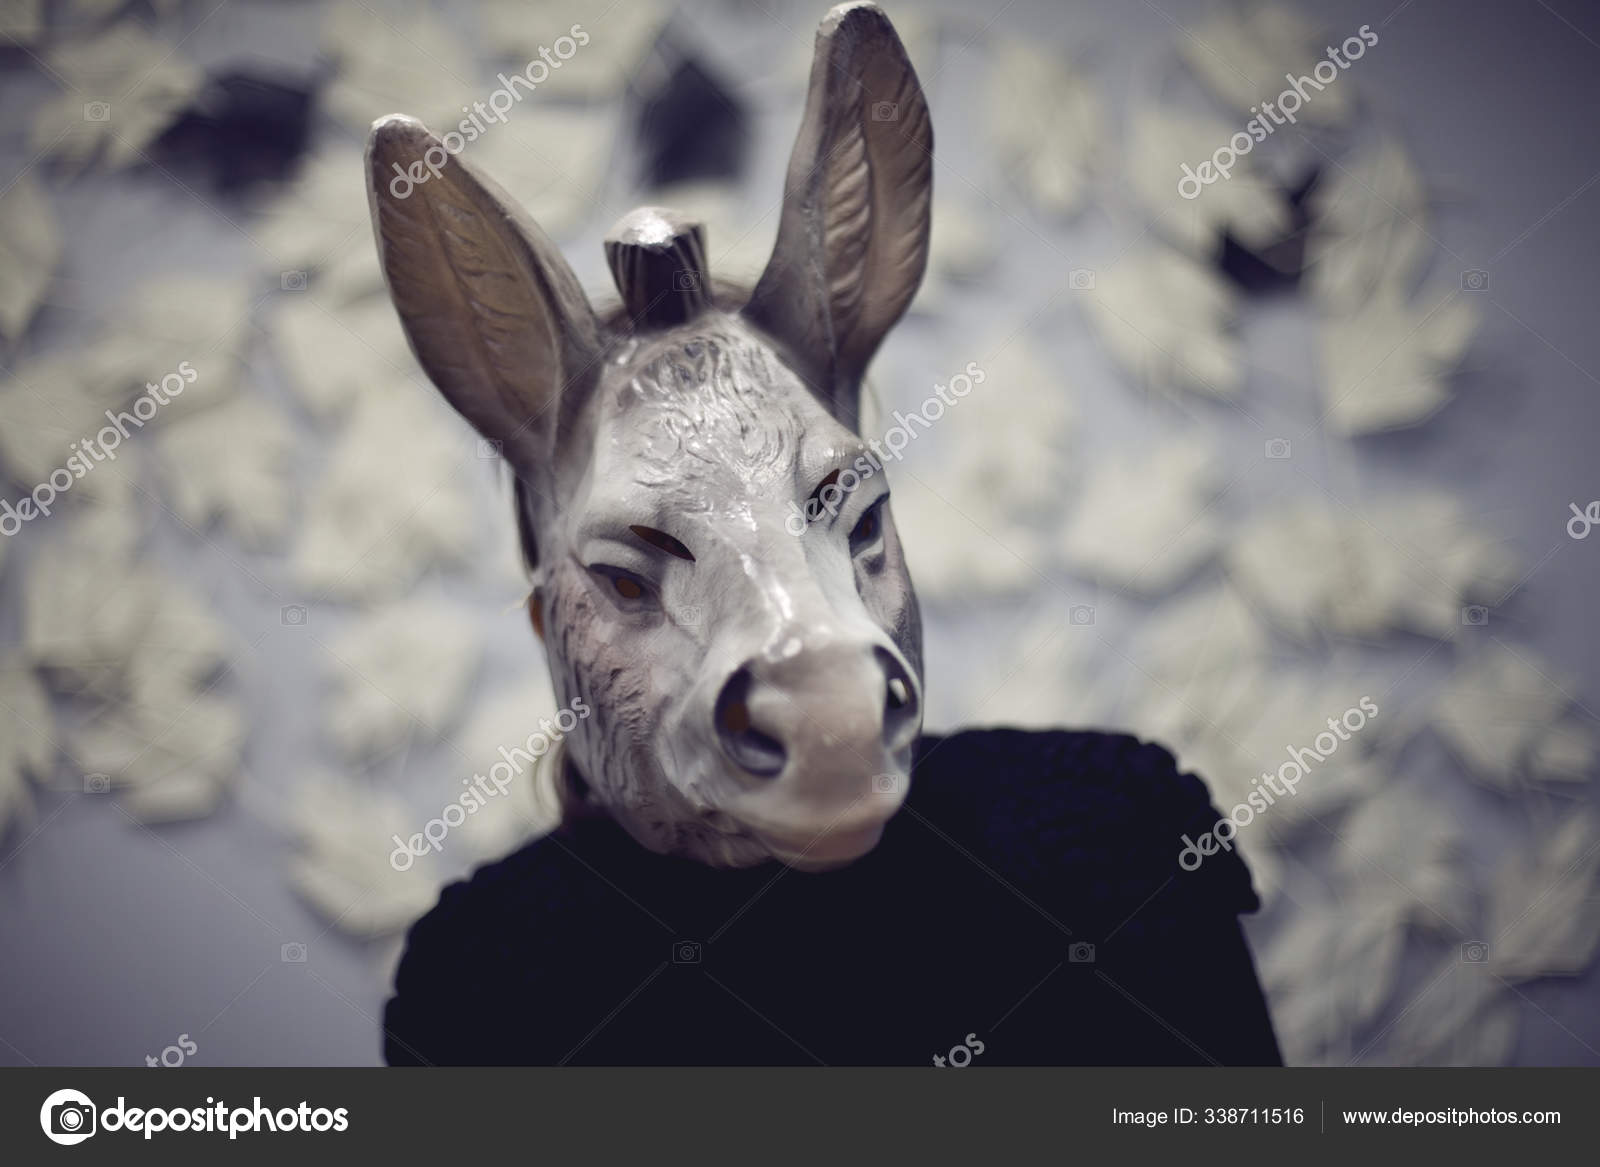 Woman Wearing Donkey Mask Doing Selfie Blured Color Photography — Stock Photo, Image